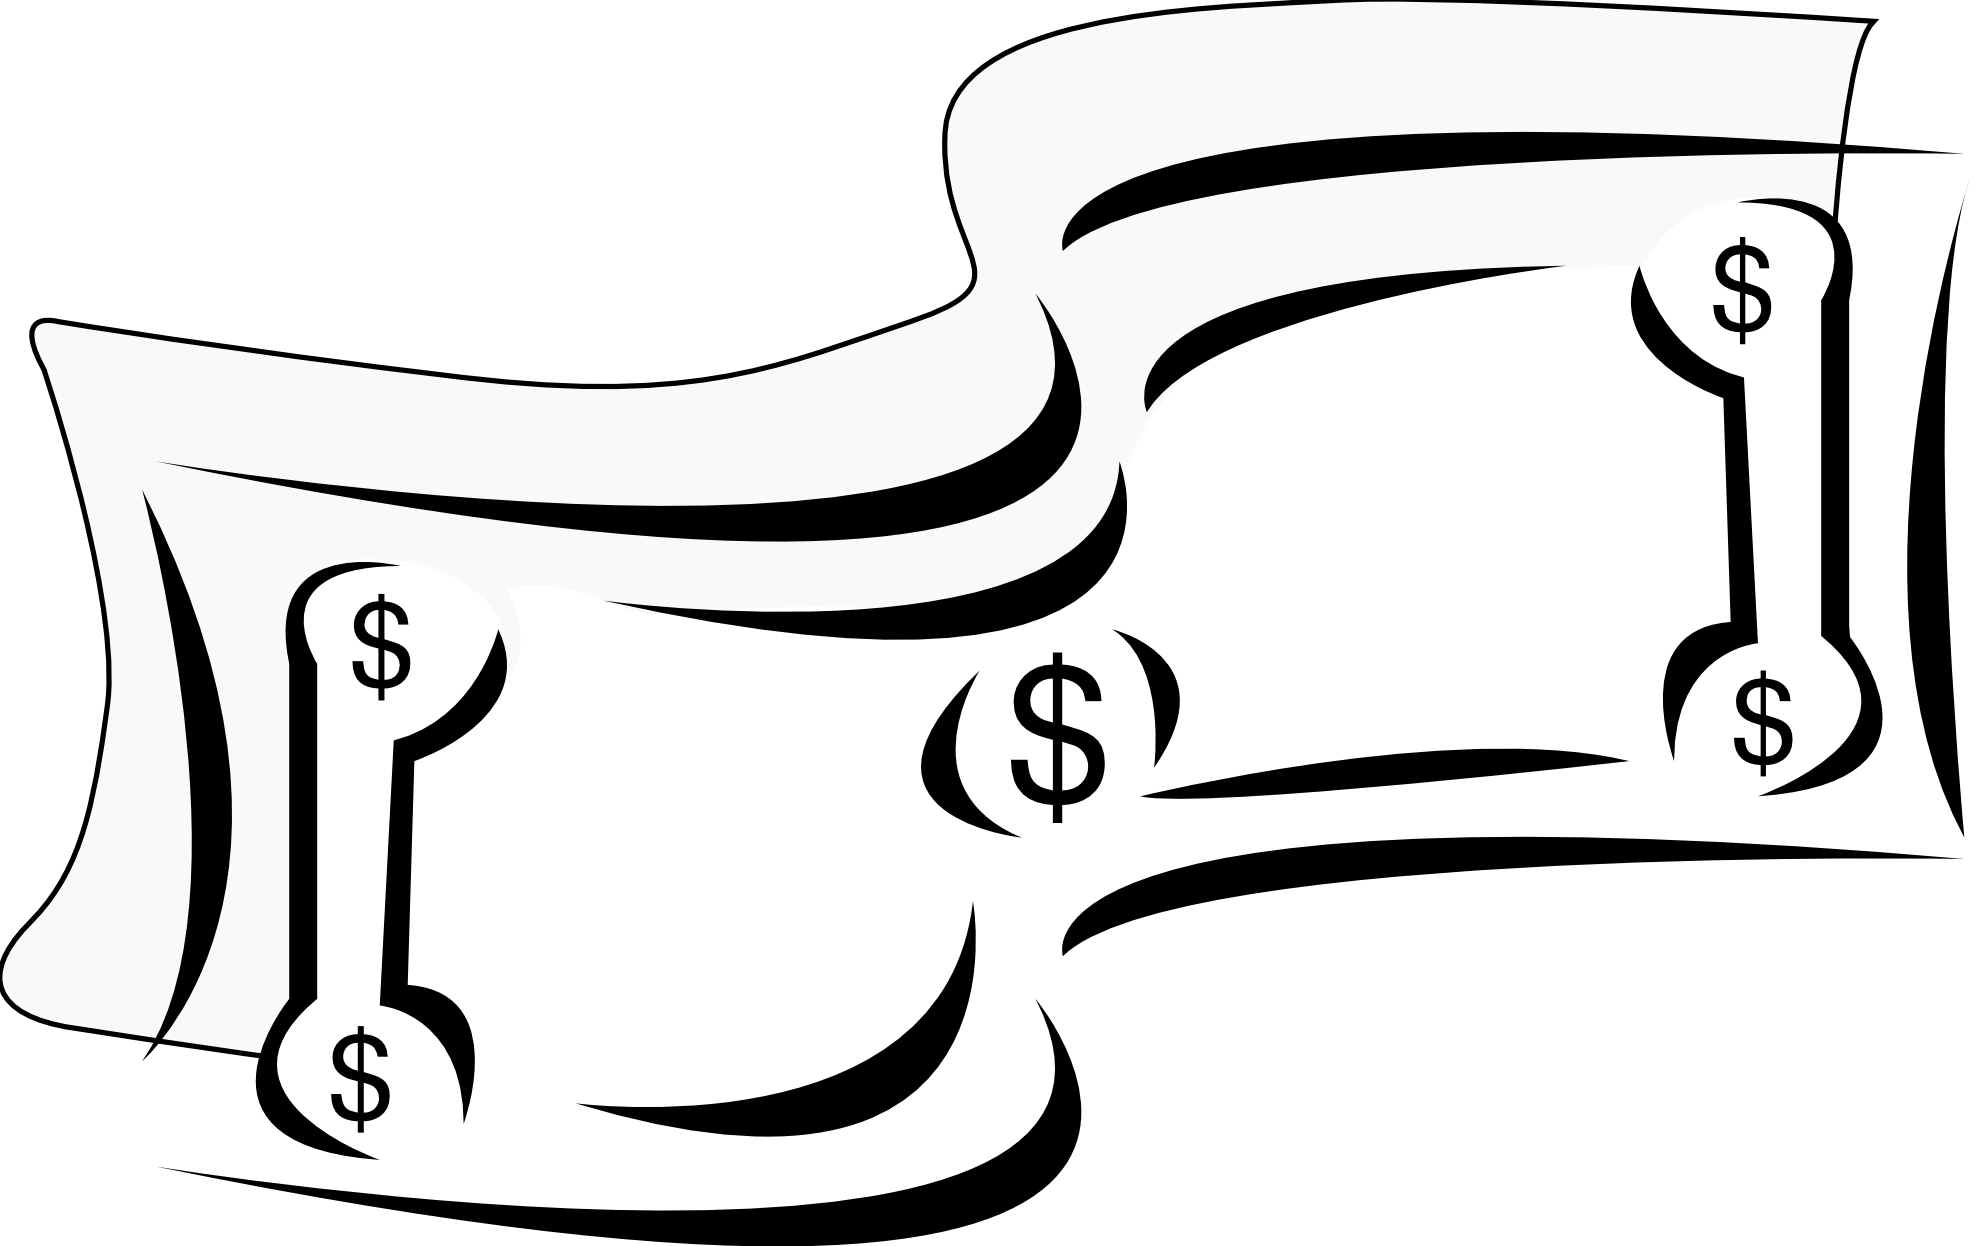 Clipart money sign white freeuse library Coins Clipart Black And White | Clipart Panda - Free Clipart Images freeuse library